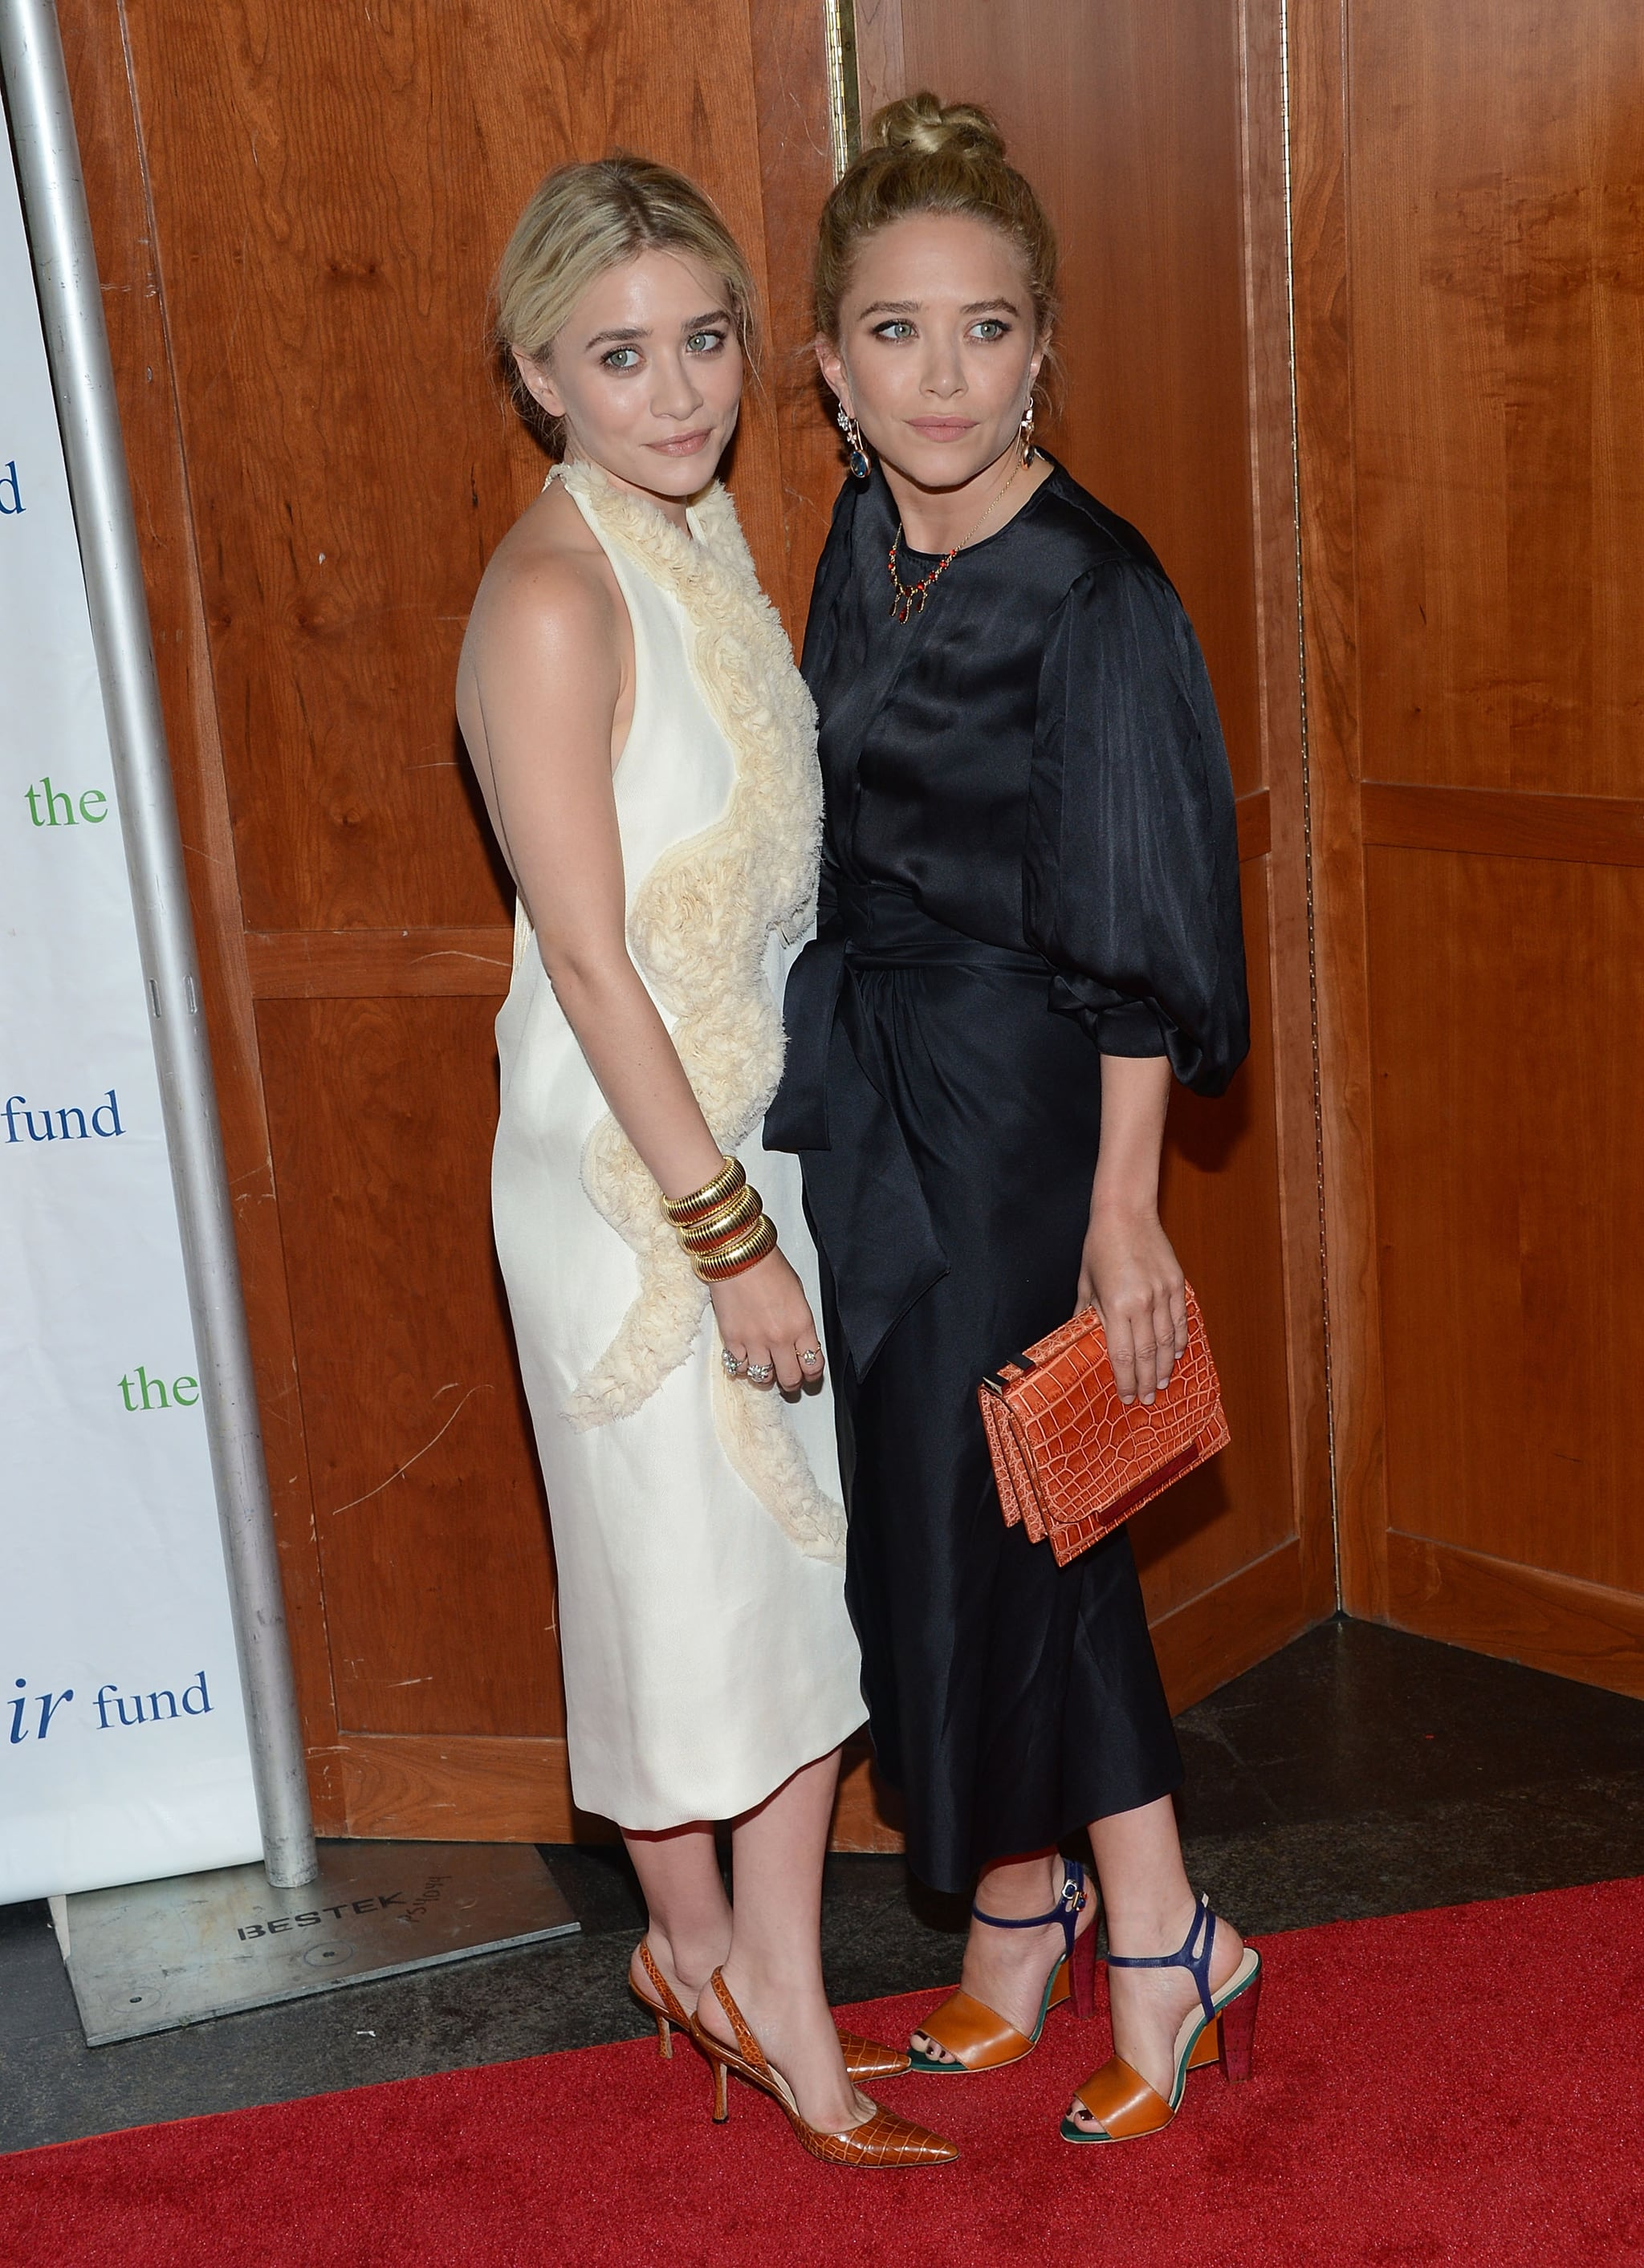 Twinning combo: For the Fresh Air Fund's Salute to American Heroes event in July 2012, the twins coordinated their cocktail-chic ensembles, both by The Row, by choosing sleek hues at opposite ends of the color spectrum.  Ashley looked angelic in a fitted and textured white halter dress, which she accessorized with sling-back pointed-toe pumps and stacks of gold bangles. Mary-Kate stepped out in a kimono-style black sheath, complete with a sash at the waist, and colorblock sandals.